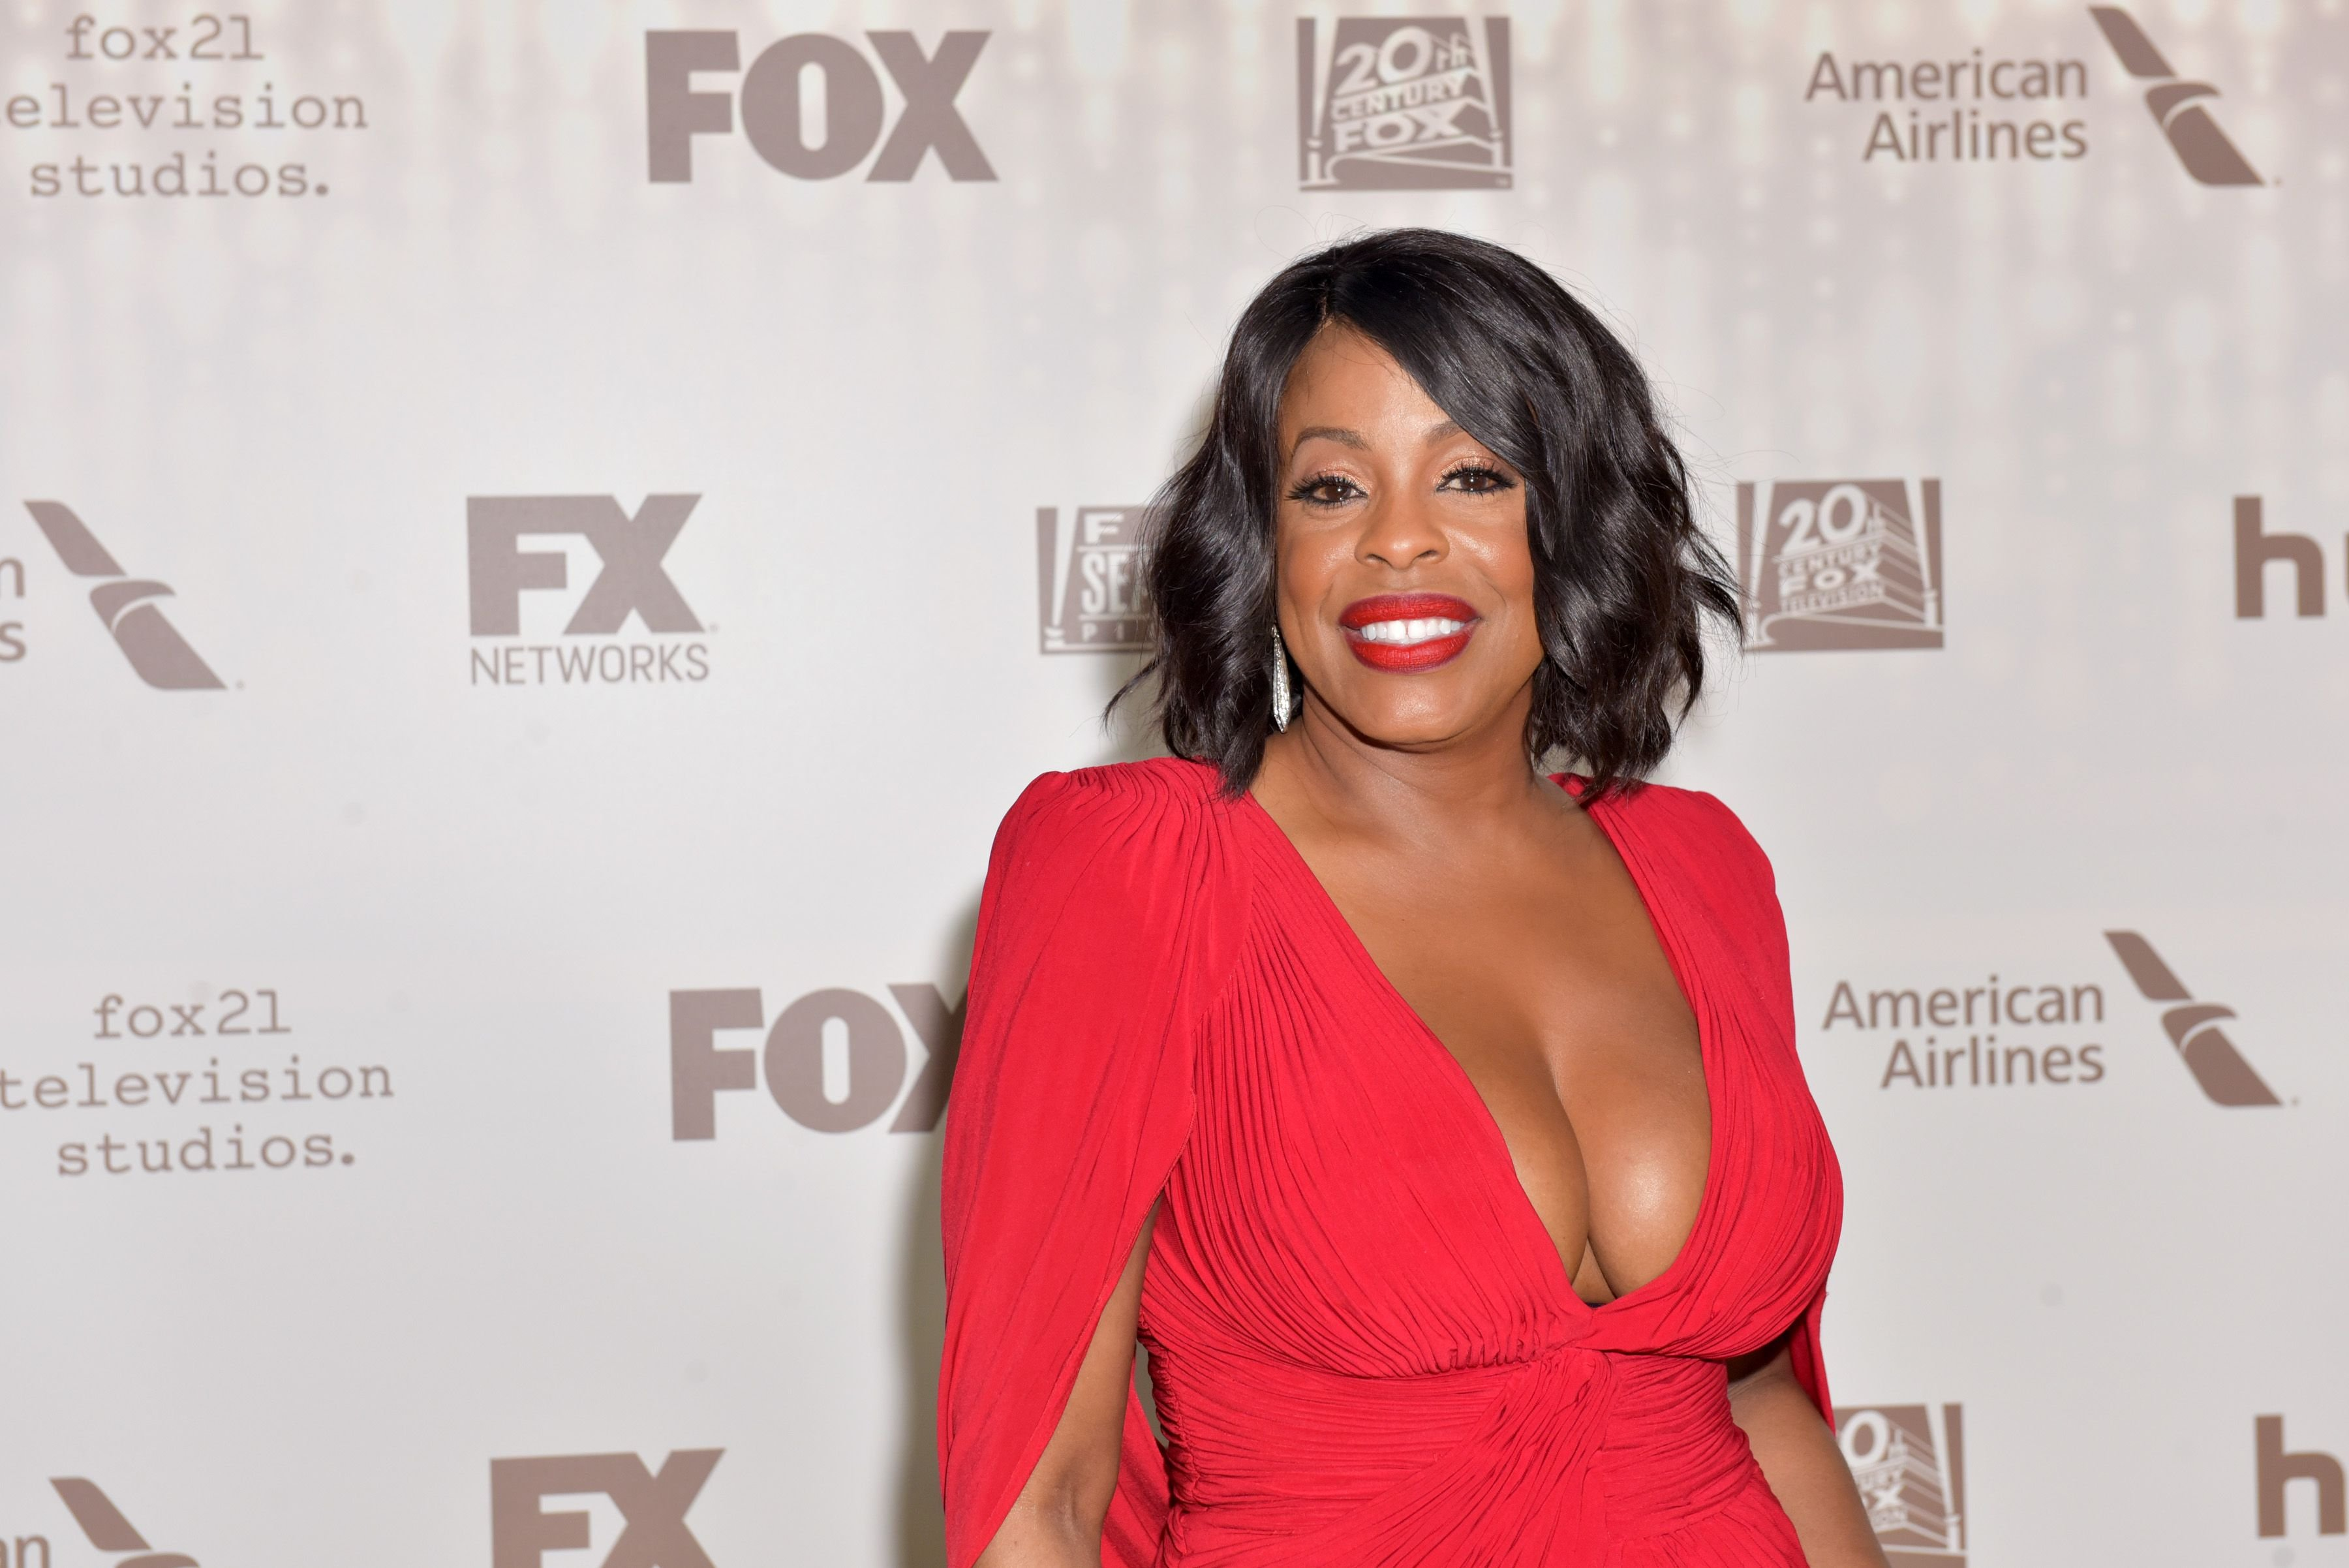 Niecy Nash during FOX and FX's 2017 Golden Globe Awards after party at The Beverly Hilton Hotel on January 8, 2017 in Beverly Hills, California. | Source: Getty Images